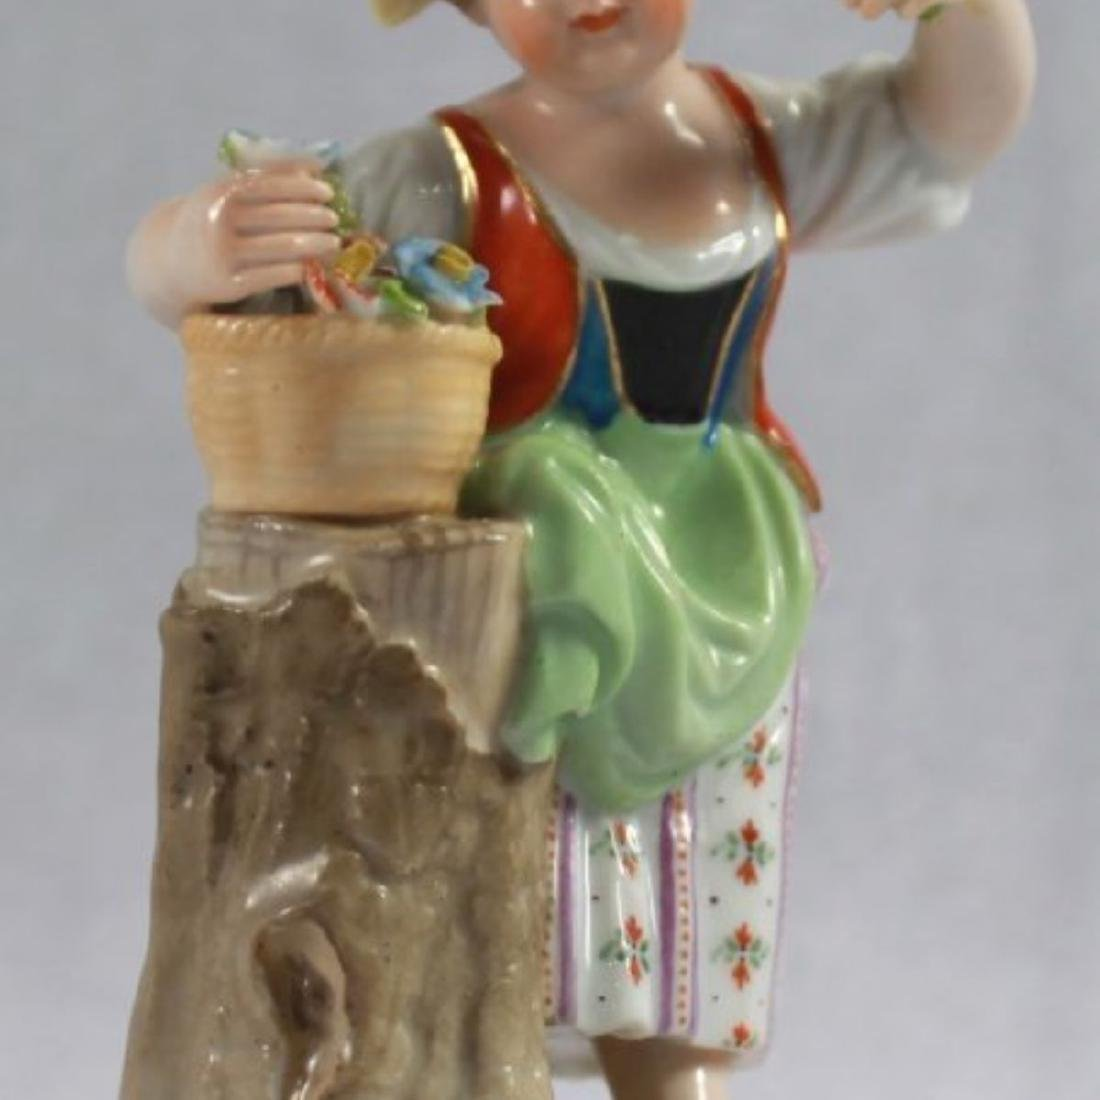 ANTIQUE 19TH C. MEISSEN PORCELAIN FIGURE OF A GIRL